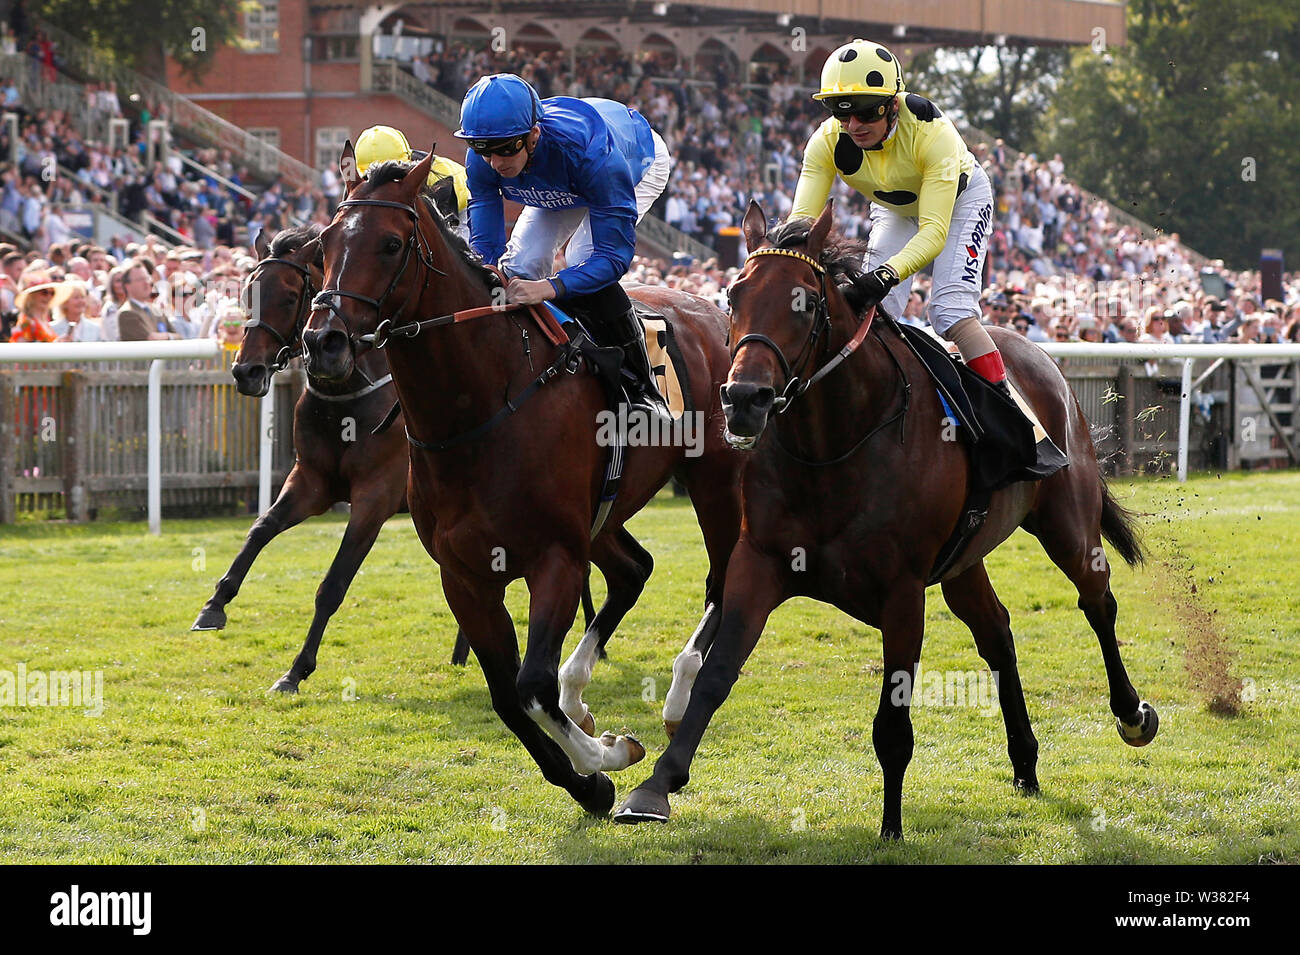 Dubai Tradition ridden by jockey Hector Crouch (left) wins the Maritime Cargo Handicap as Apparate ridden by jockey Andrea Atzeni (right) finishes second during day three of the Moet and Chandon July Festival 2019 at Newmarket Racecourse. - Stock Image